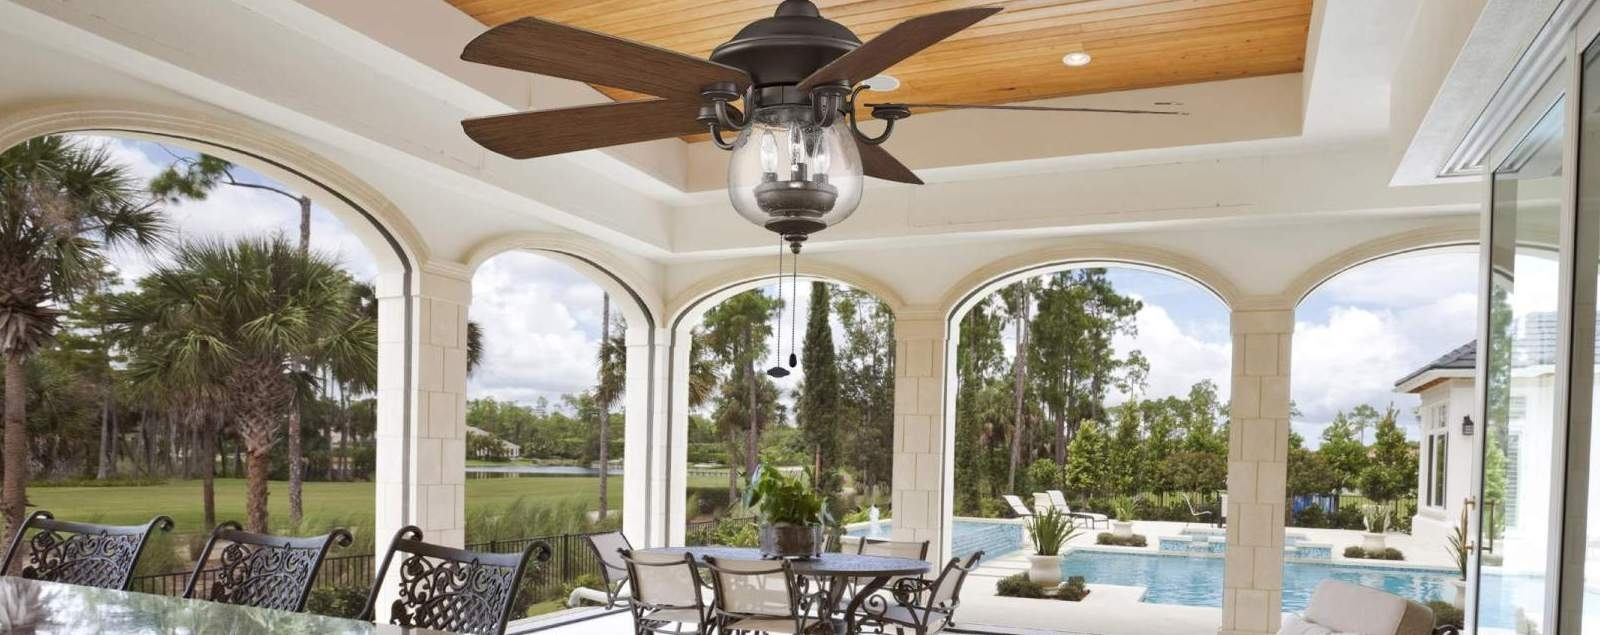 Outdoor Ceiling Fans – Shop Wet, Dry, And Damp Rated Outdoor Fans In Famous Outdoor Ceiling Fans With Hook (View 13 of 20)